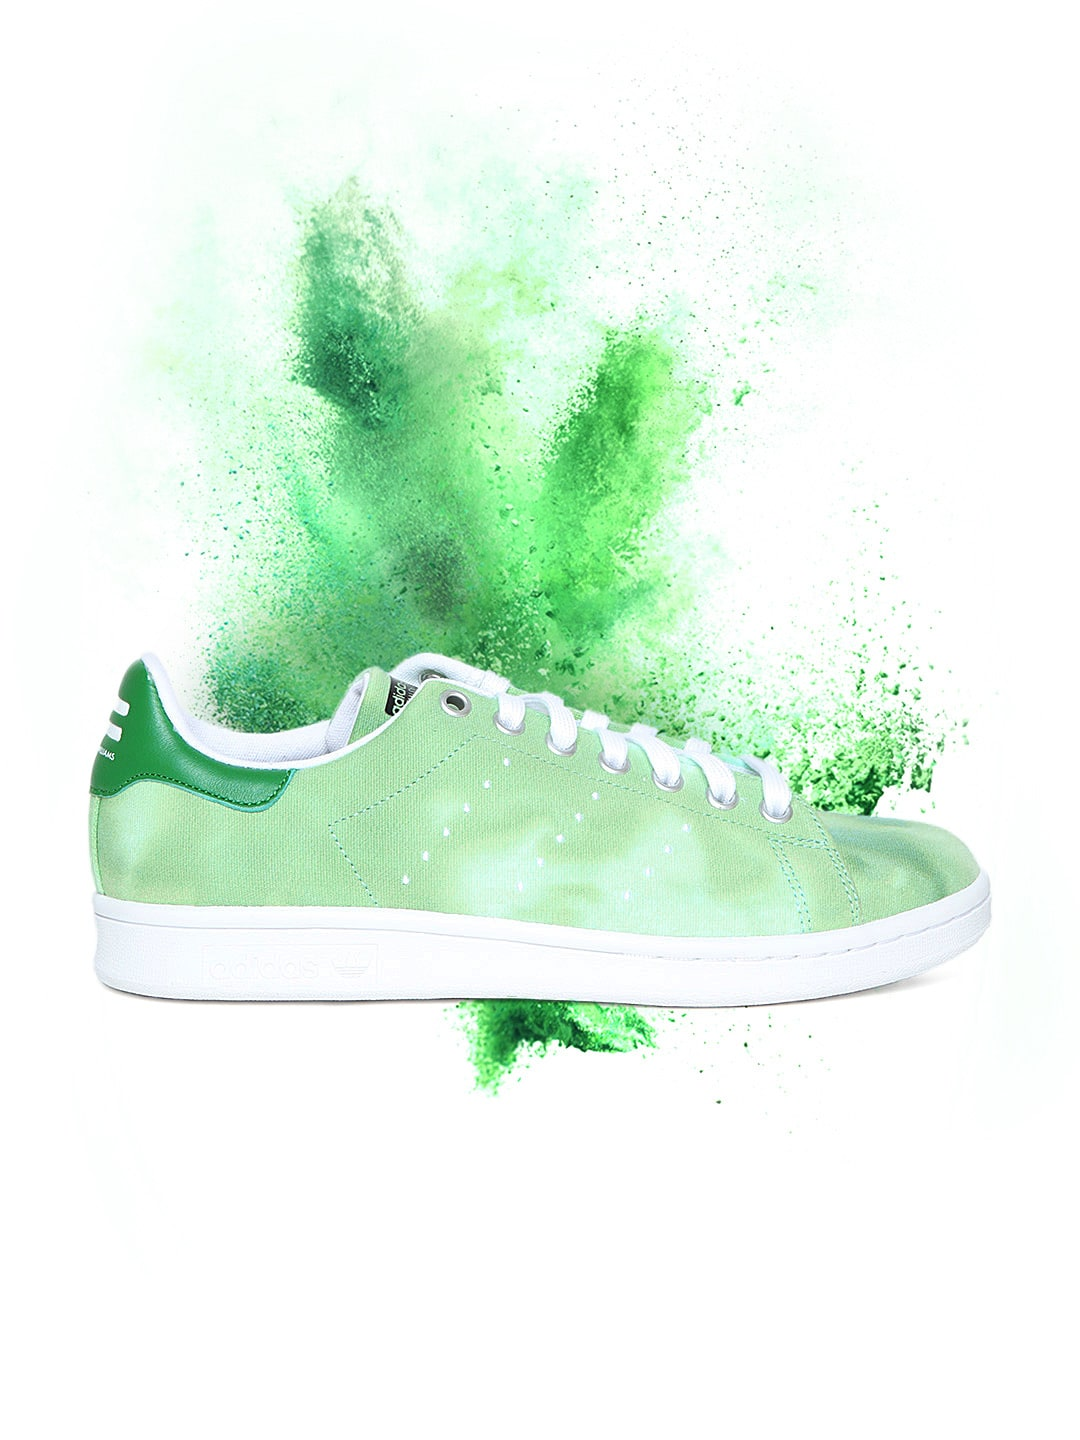 premium selection e92ee cbdc8 Adidas Stan Smith Sneakers - Buy Stan Smith Shoes and Sneakers Online in  India - Myntra